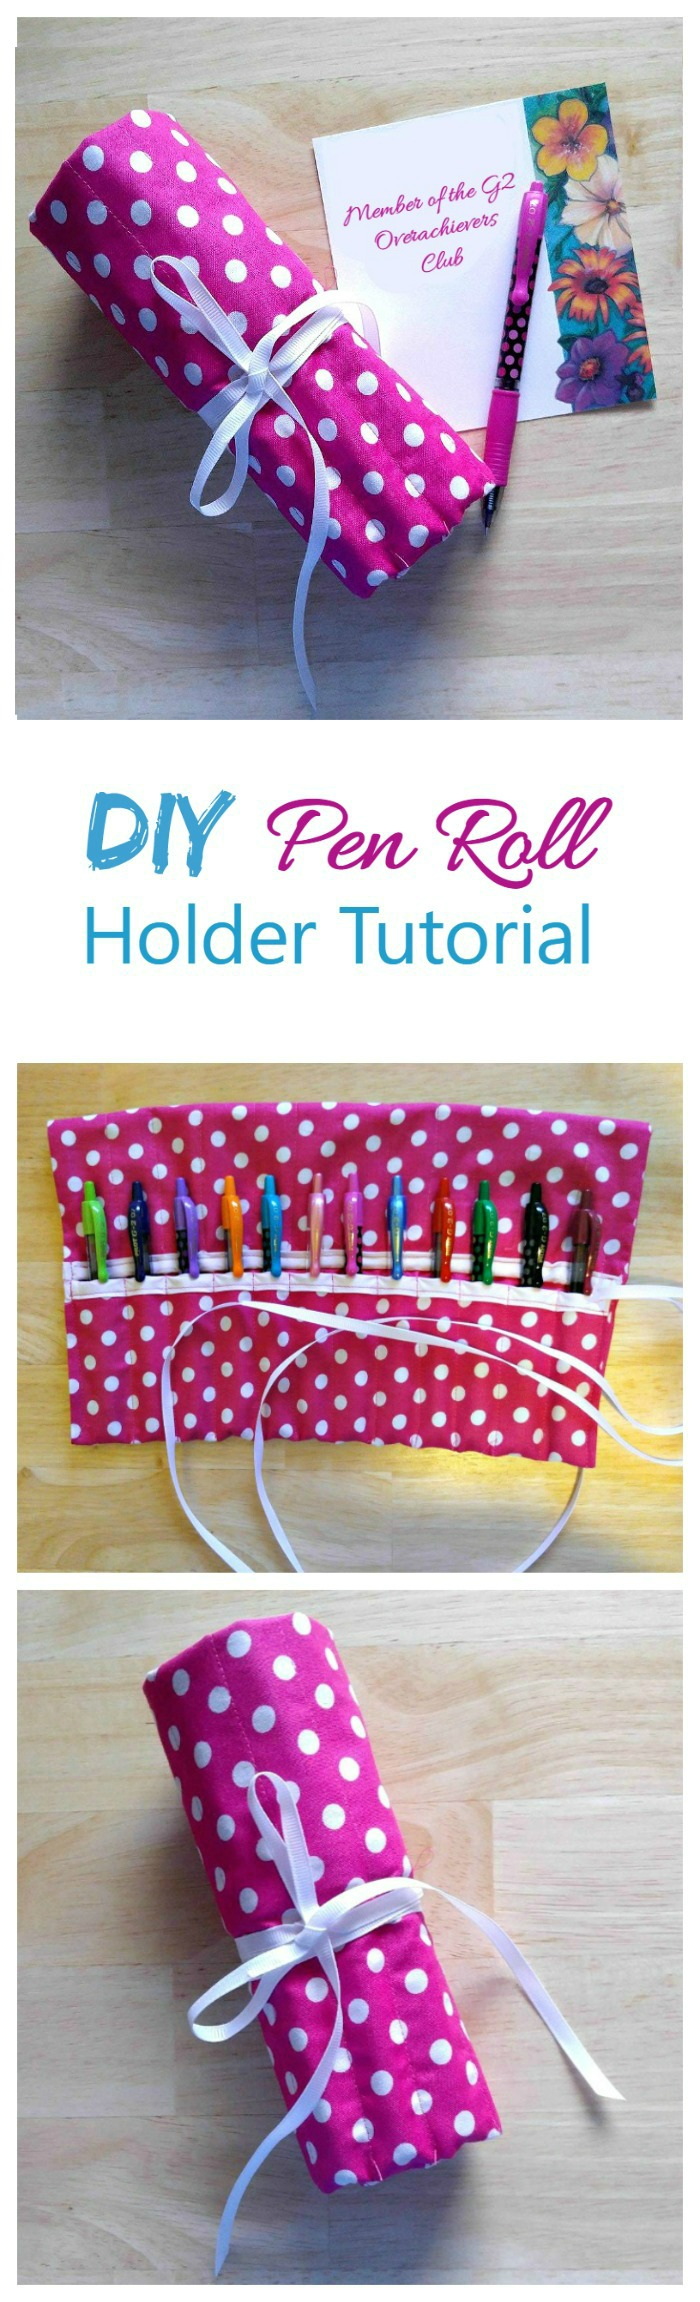 This DIY pen roll case is the perfect way to hold all your favorite pens in one place. It's perfect for back to school for your kids, or to have in a home office to keep the pens in one place. #PilotYourLife #ad